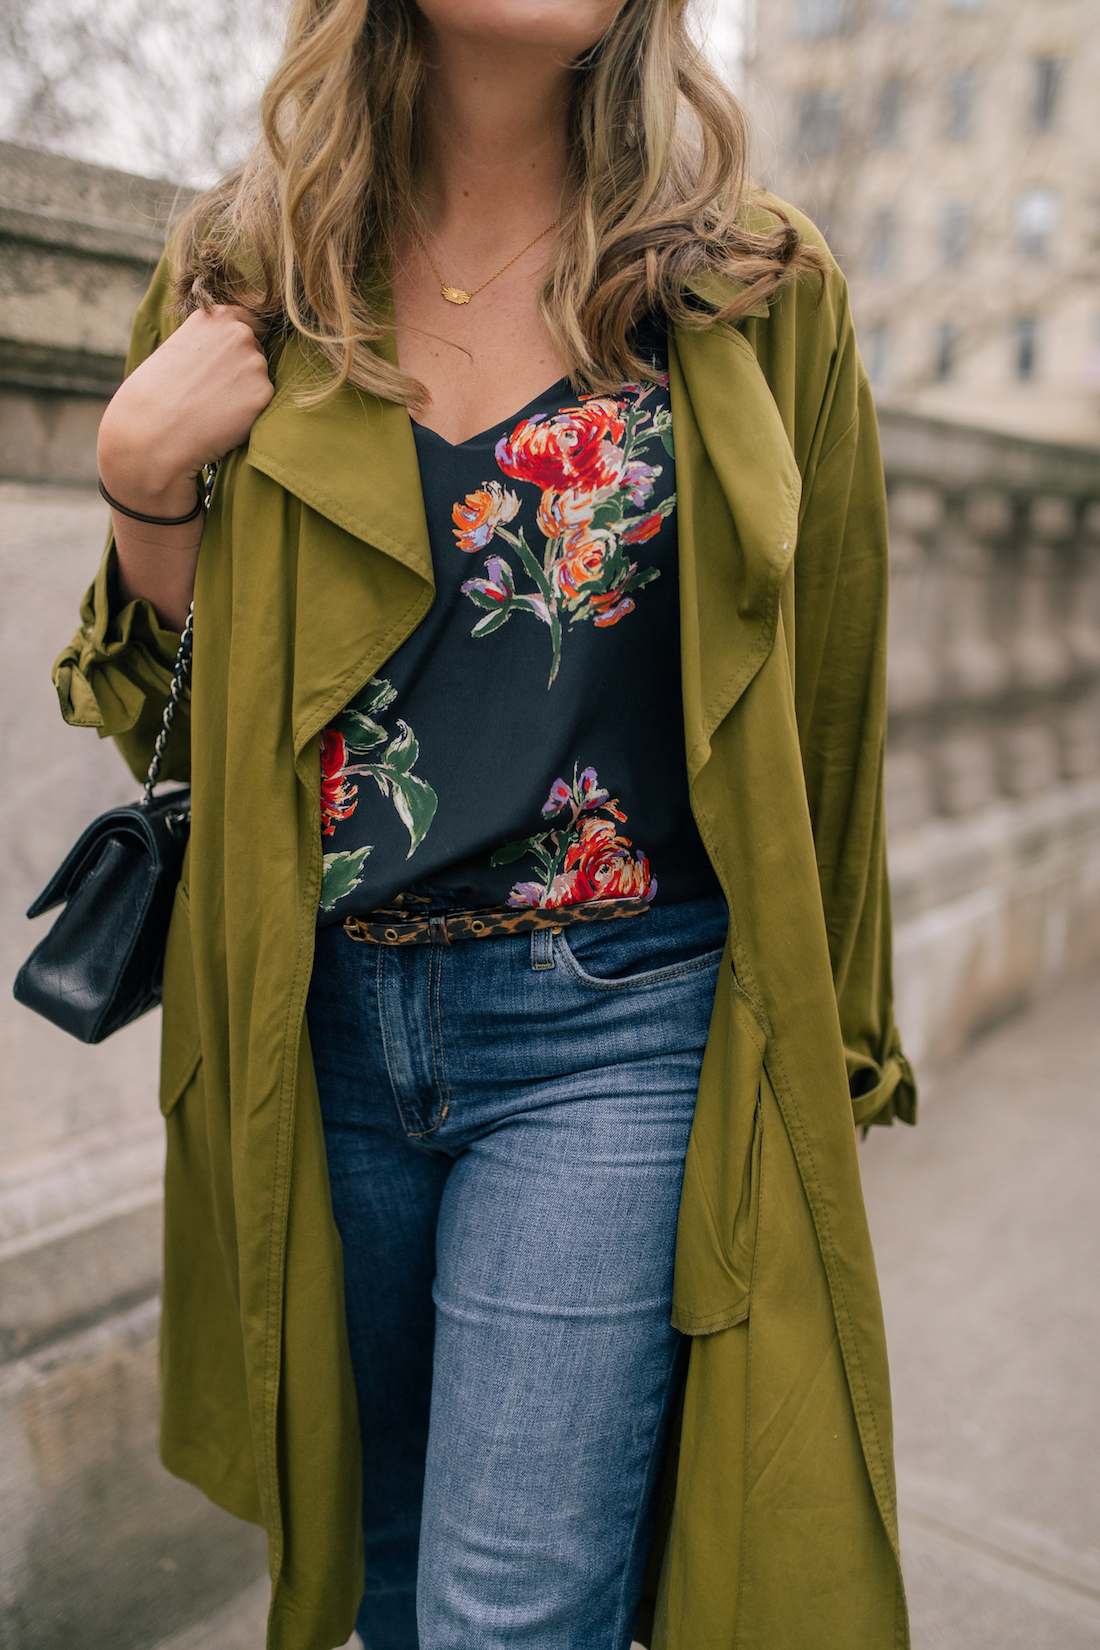 Topshop Trench - An Easy Everyday Look